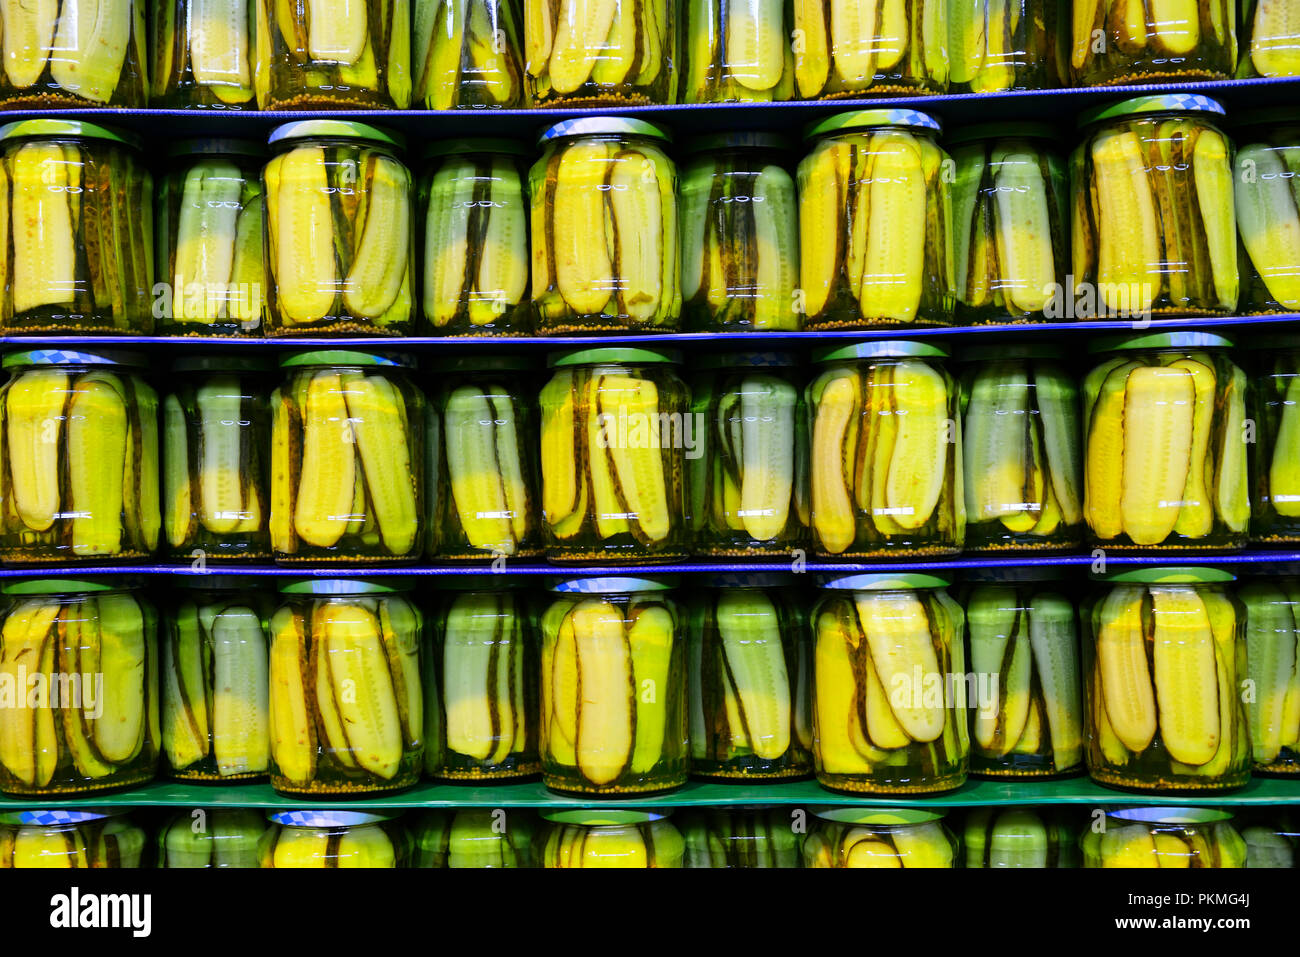 Pickled cucumbers in glass on pallet, Bavaria, Germany - Stock Image